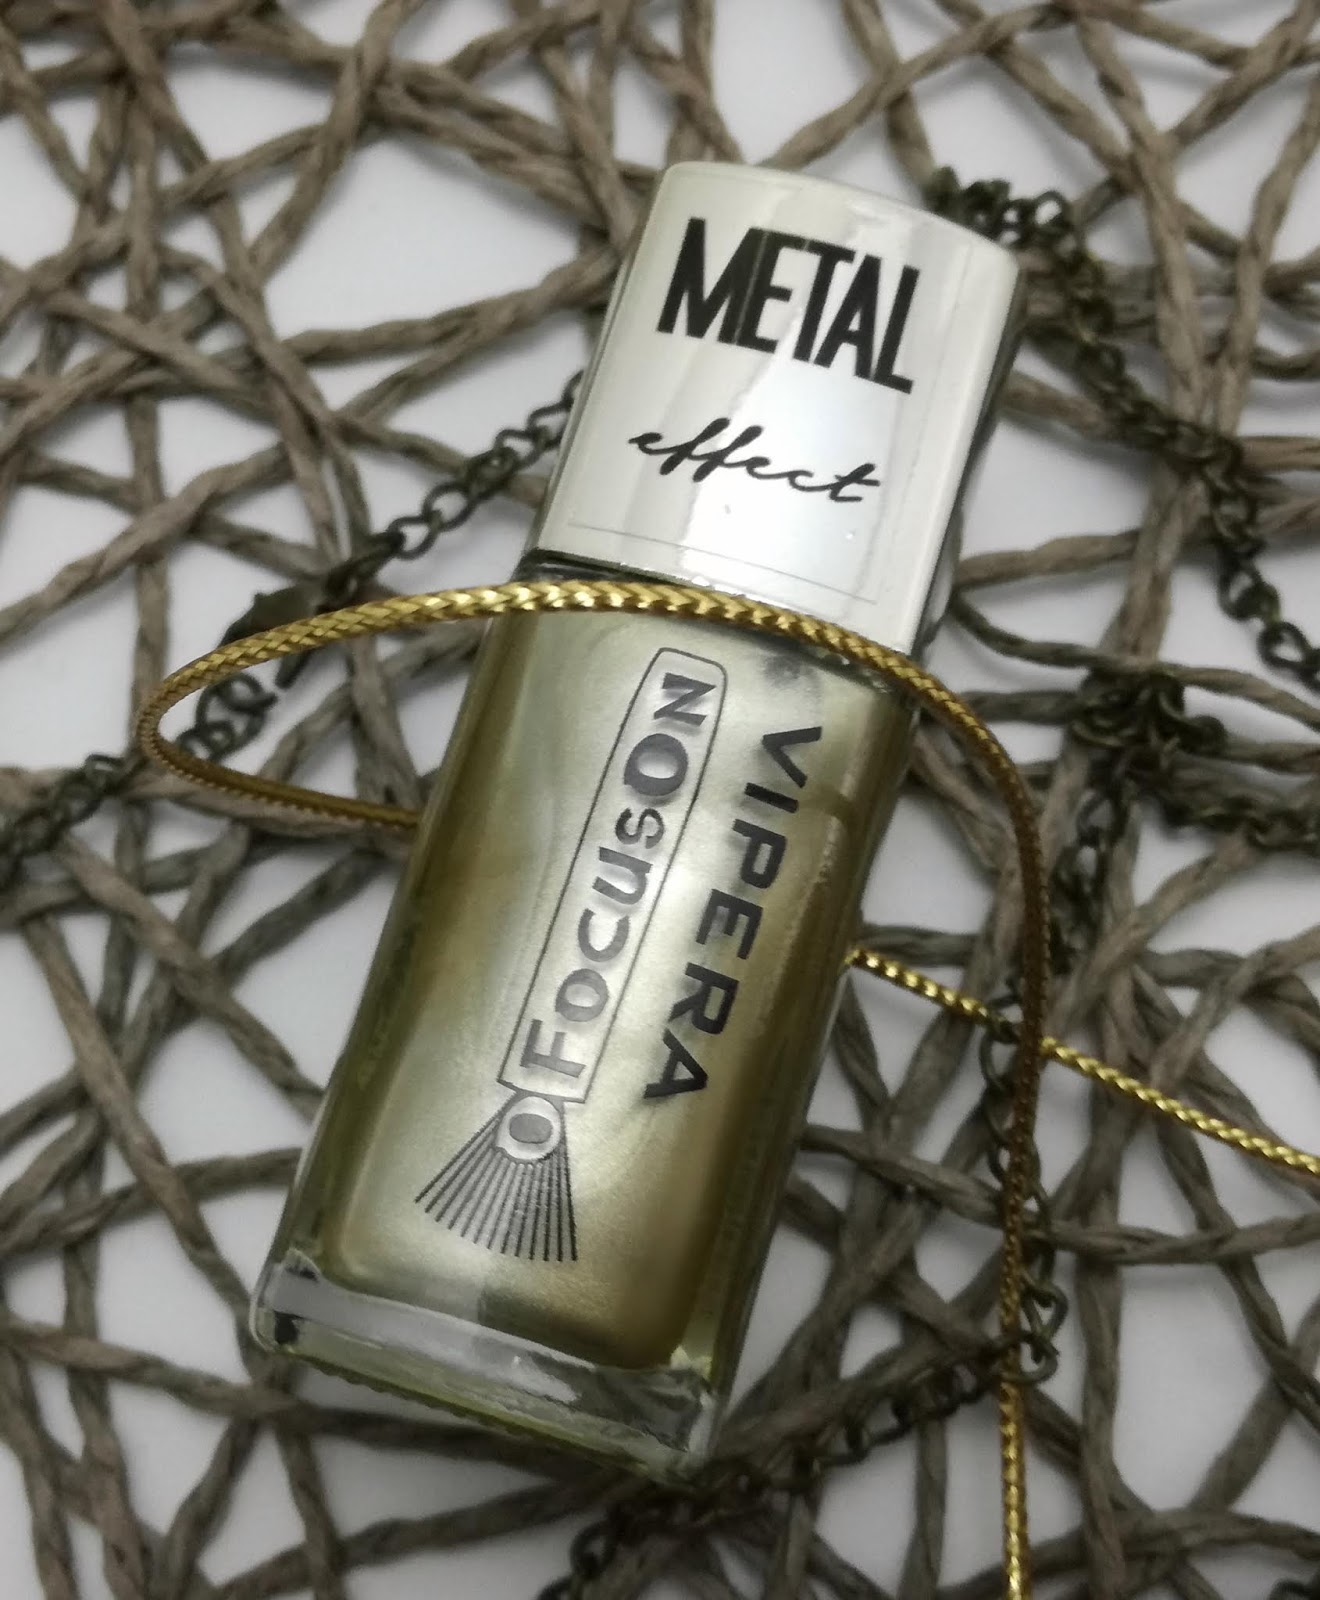 vipera-metal-effect-nail-polish-931-gold